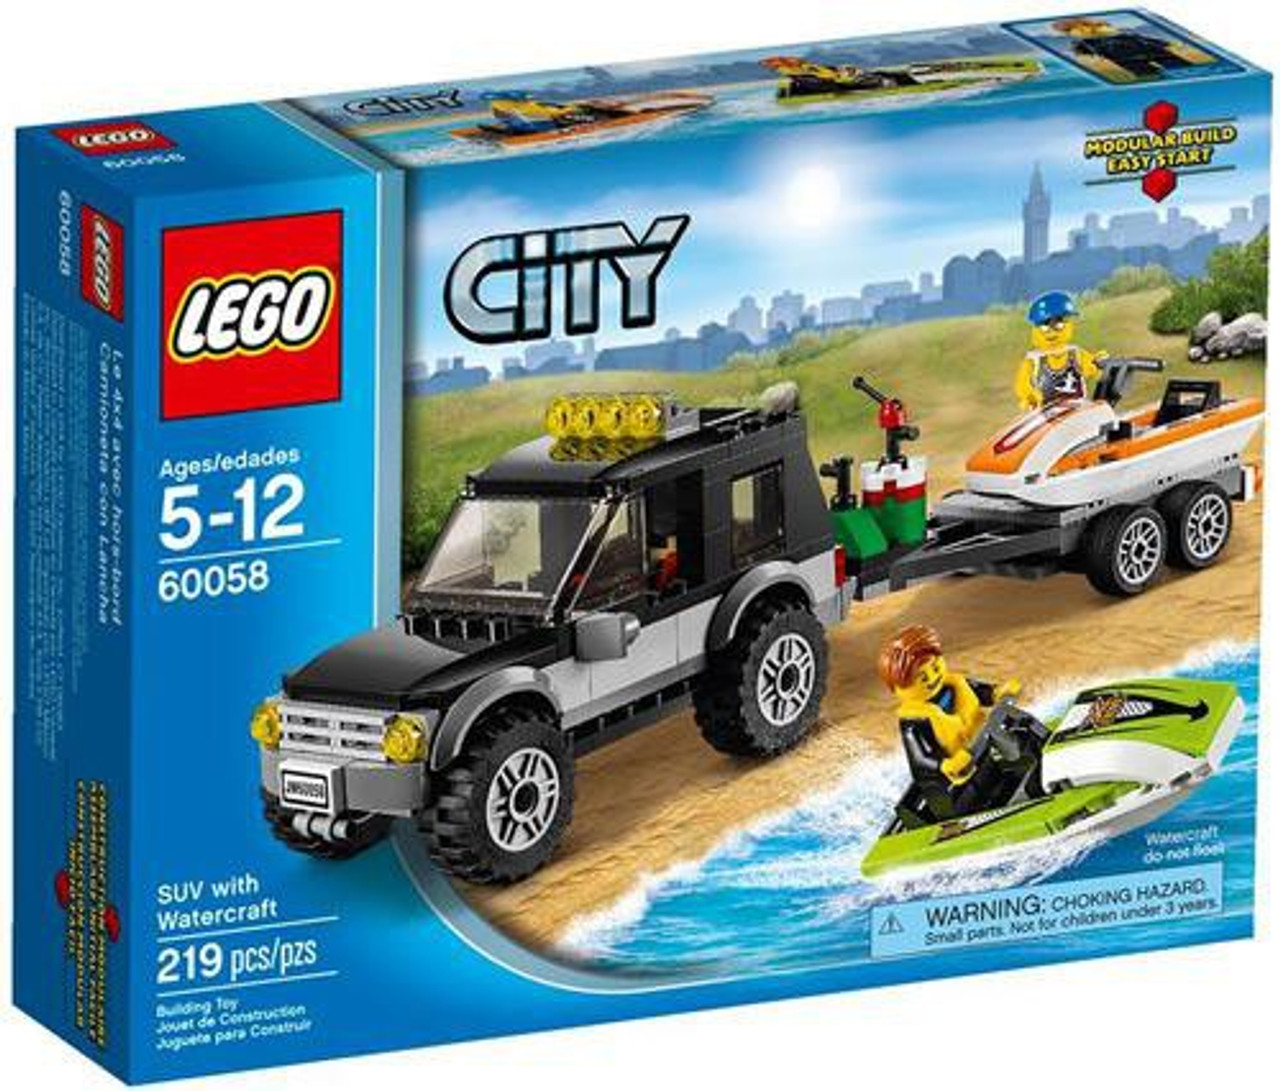 LEGO City SUV with Watercraft Set #60058